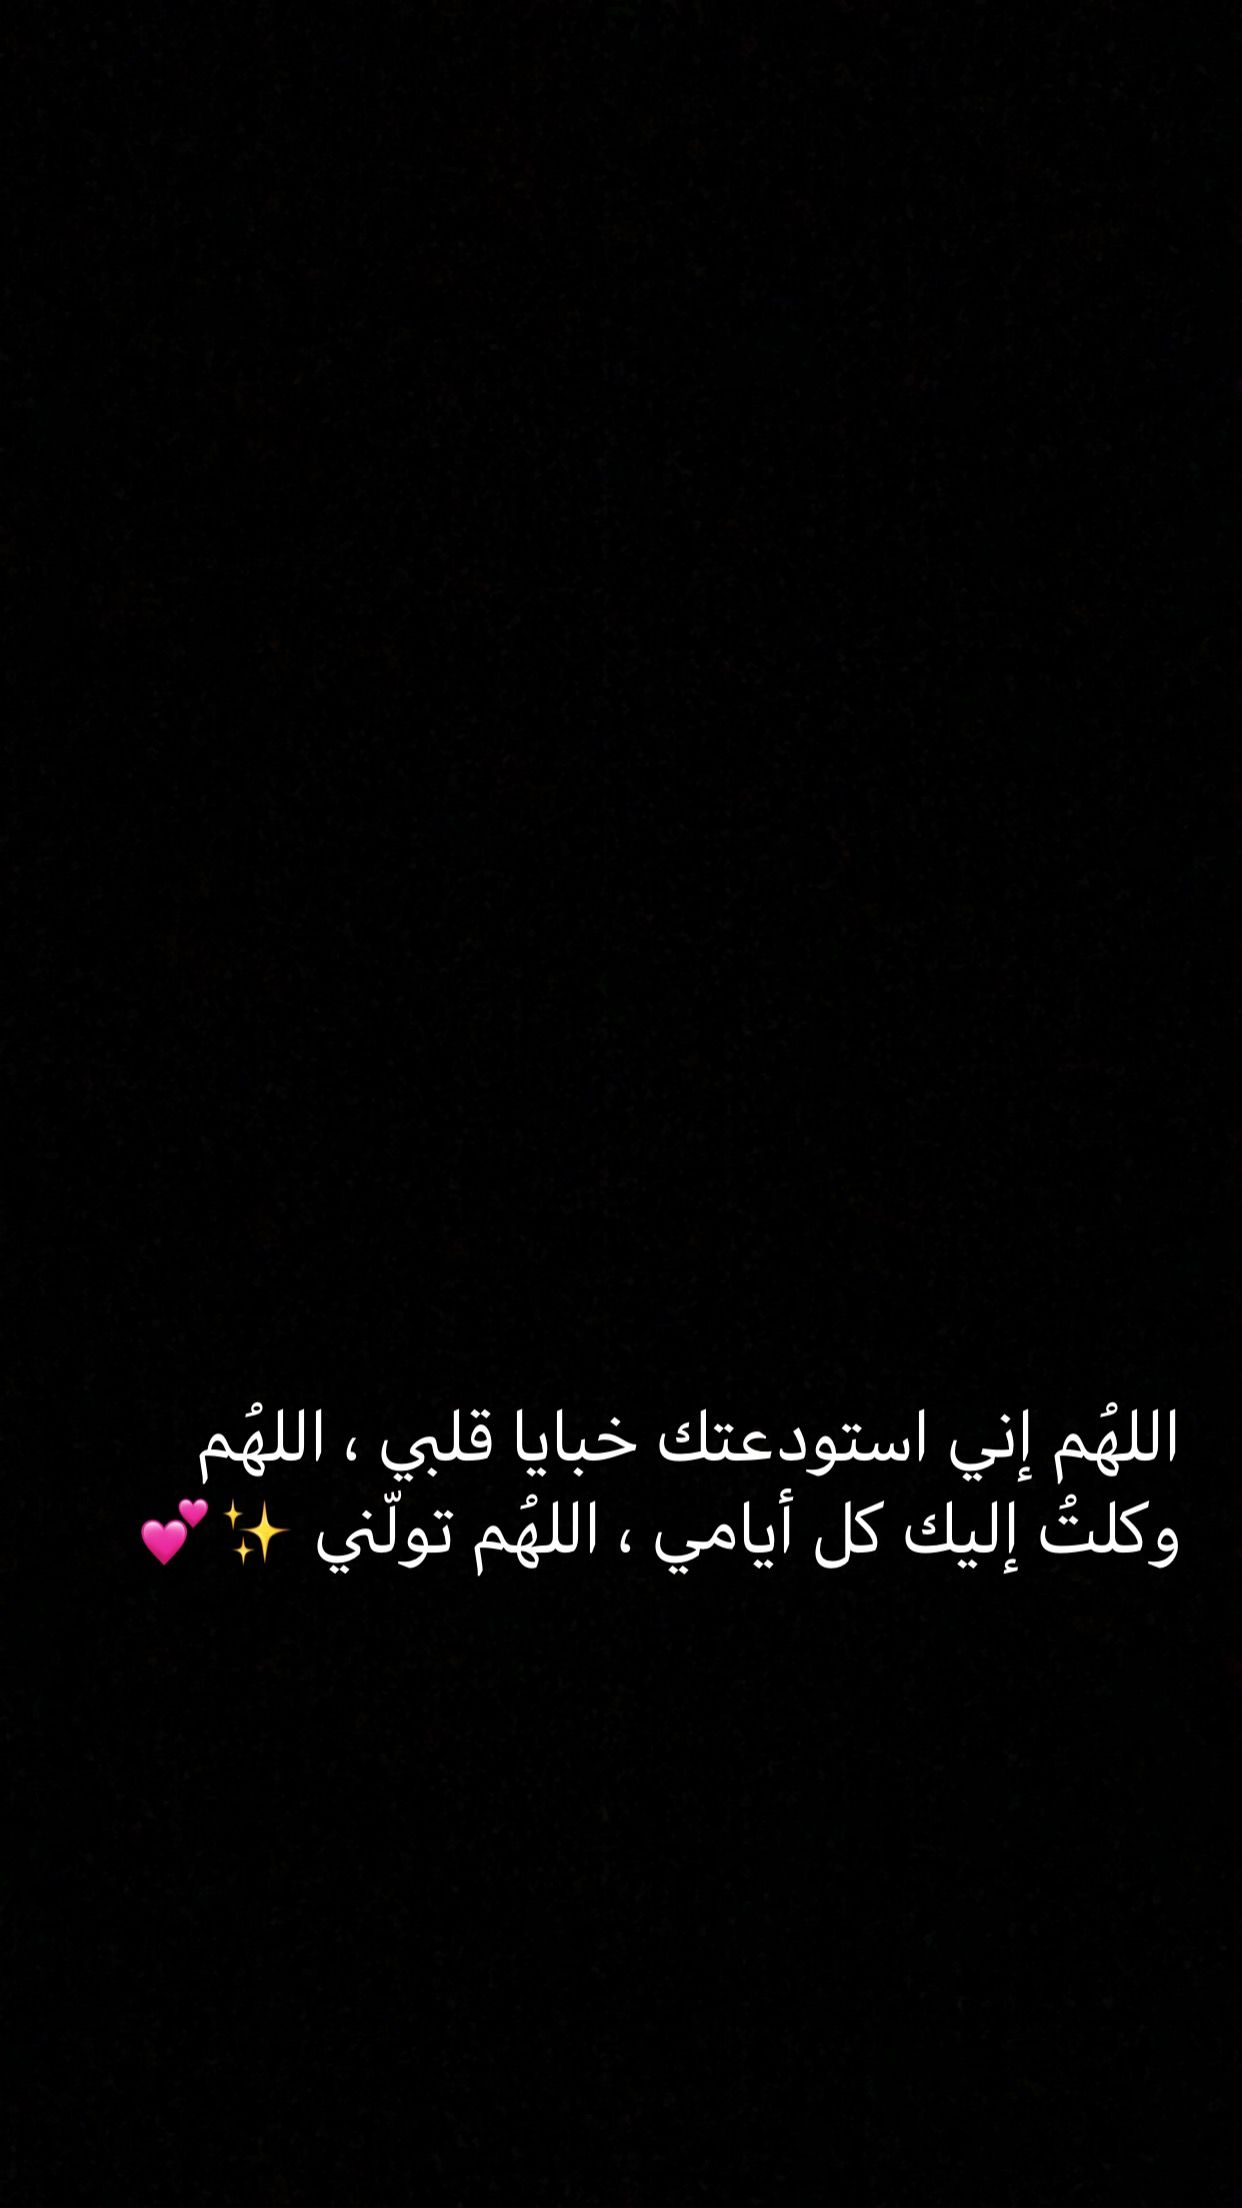 Pin By Rolan Amin On Snapchat Good Life Quotes Quran Quotes Pretty Quotes